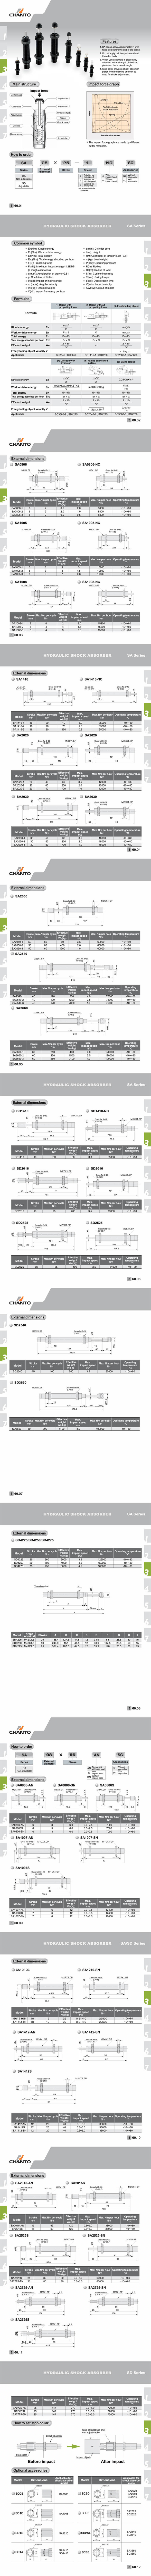 SA / SD Hydraulic Shock Absorber | CHANTO AIR HYDRAULICS CO